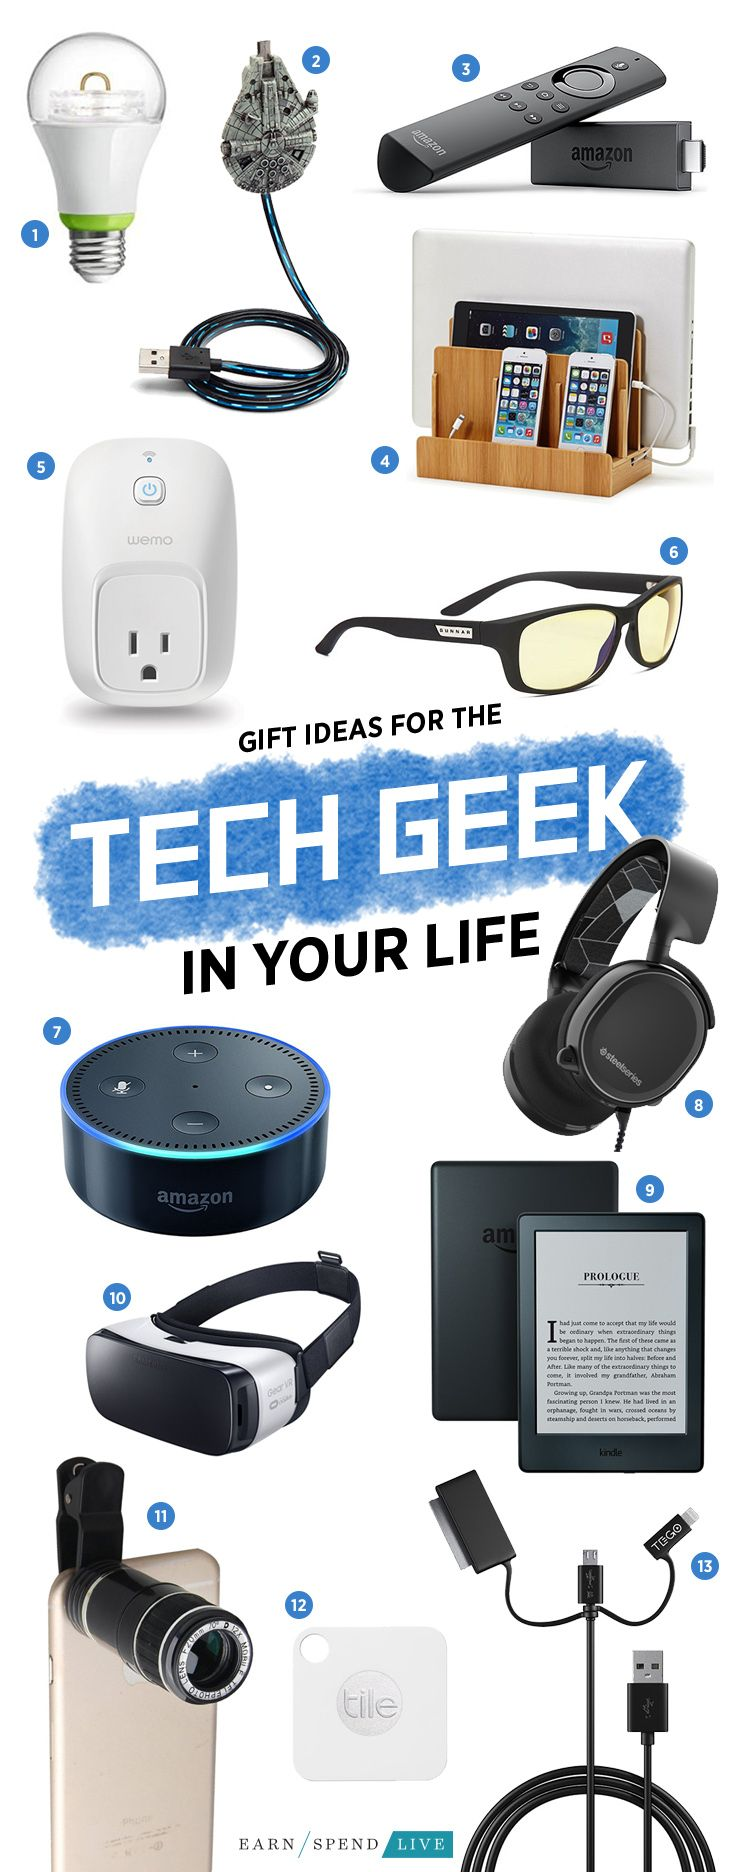 Gift Ideas for the Tech Geek in Your Life, gifts for men, gift guide for men, christmas gifts for men, christmas gift guide, christmas gift guide for men, gifts for boys, gift ideas for boys, gift guide for boys, gift guides for tech, gift guide for nerds, gift guide for geeks, gifts for techies, gift ideas for tech geeks, best technology gifts